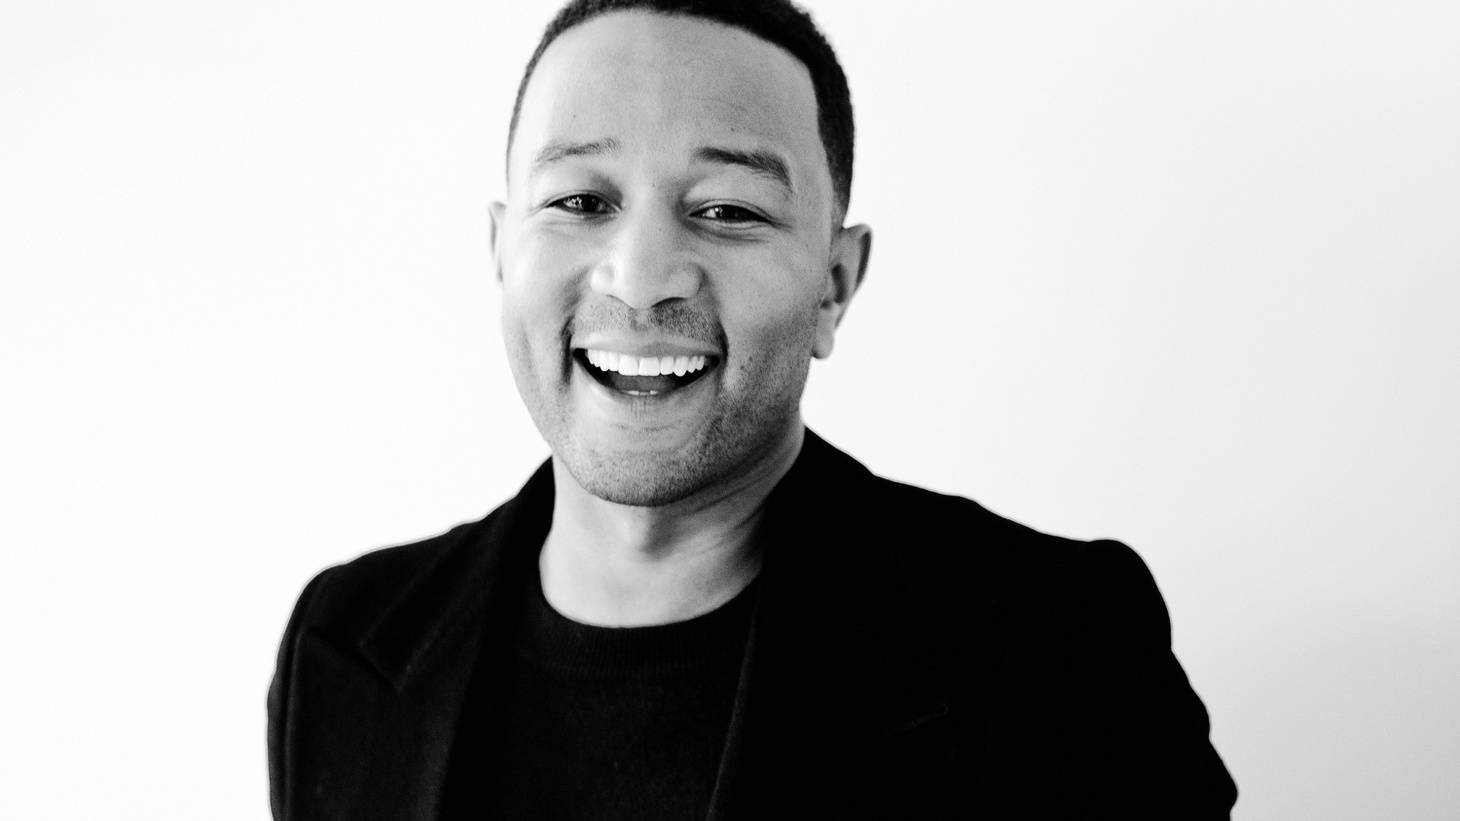 John Legend's work has often straddled the worlds of activism and entertainment and his latest project is no different.